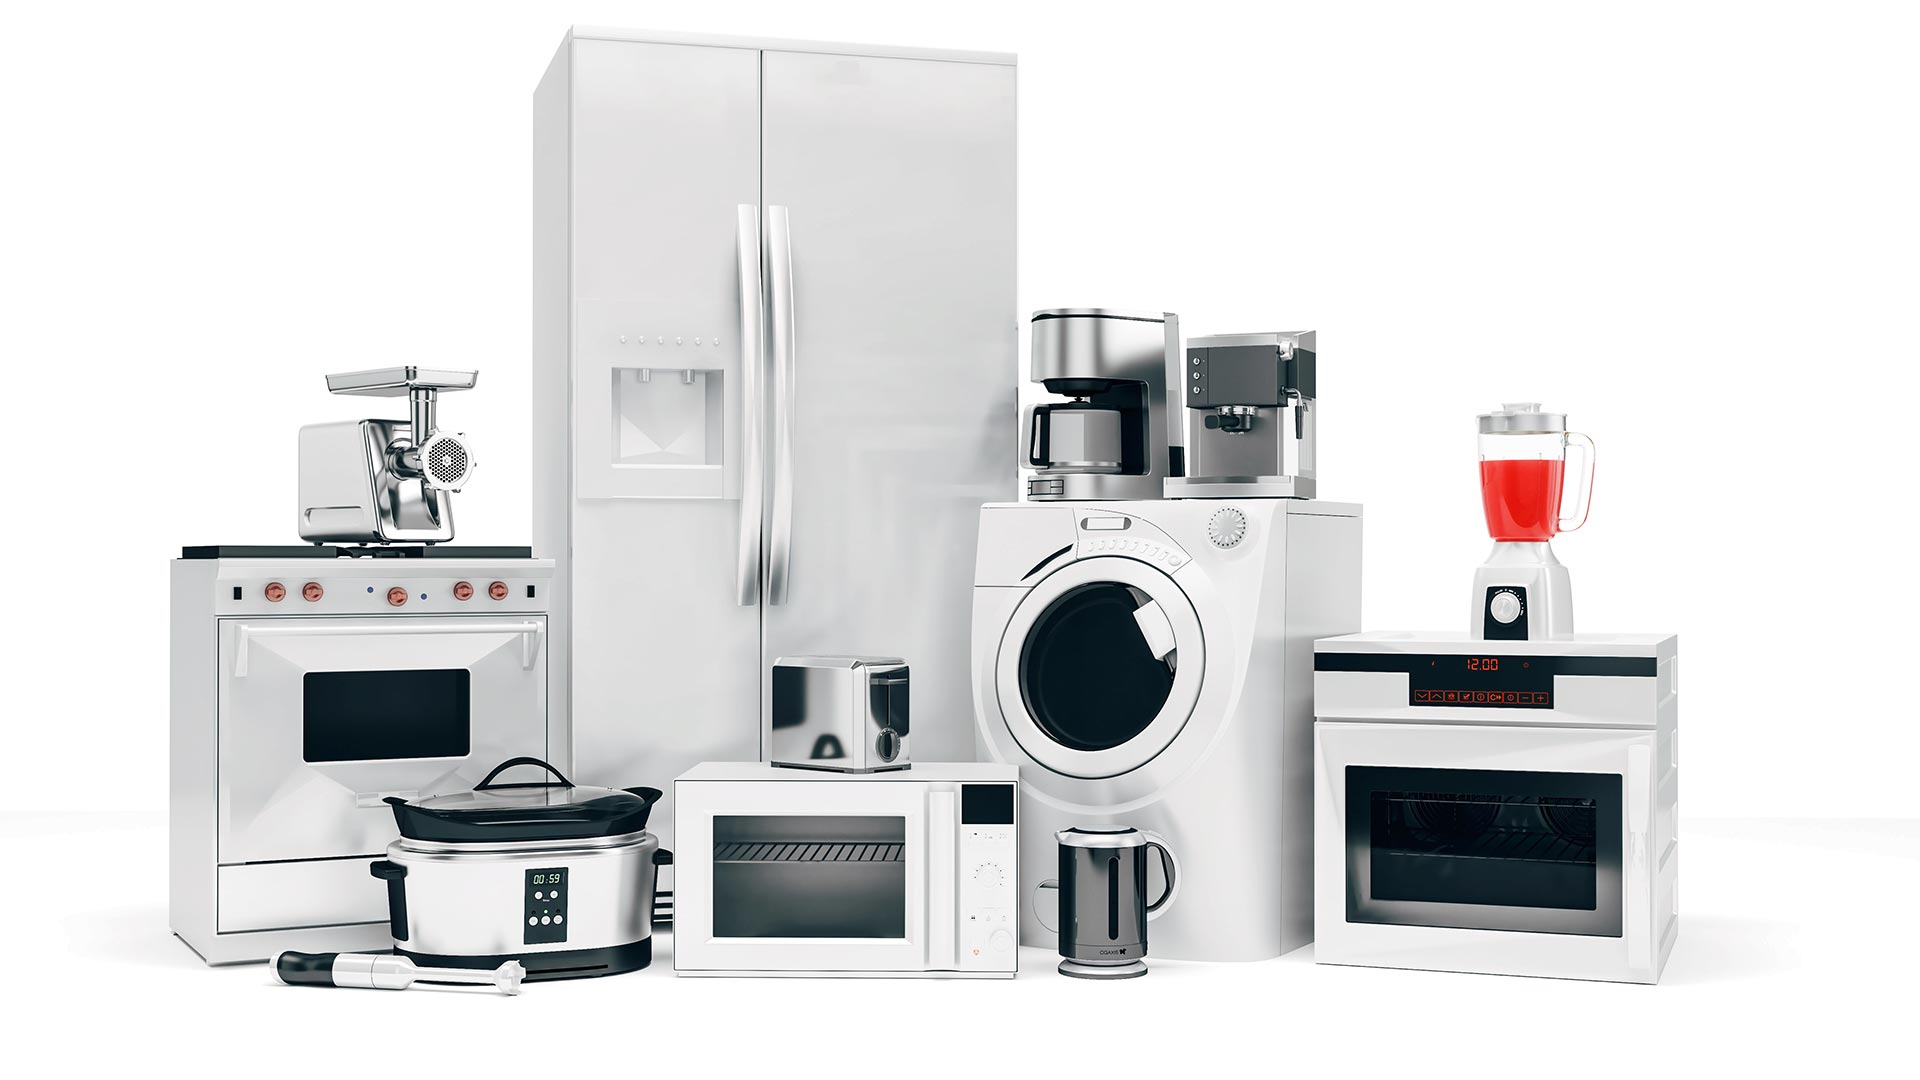 Tips You Need to Know for Buying Home Appliances